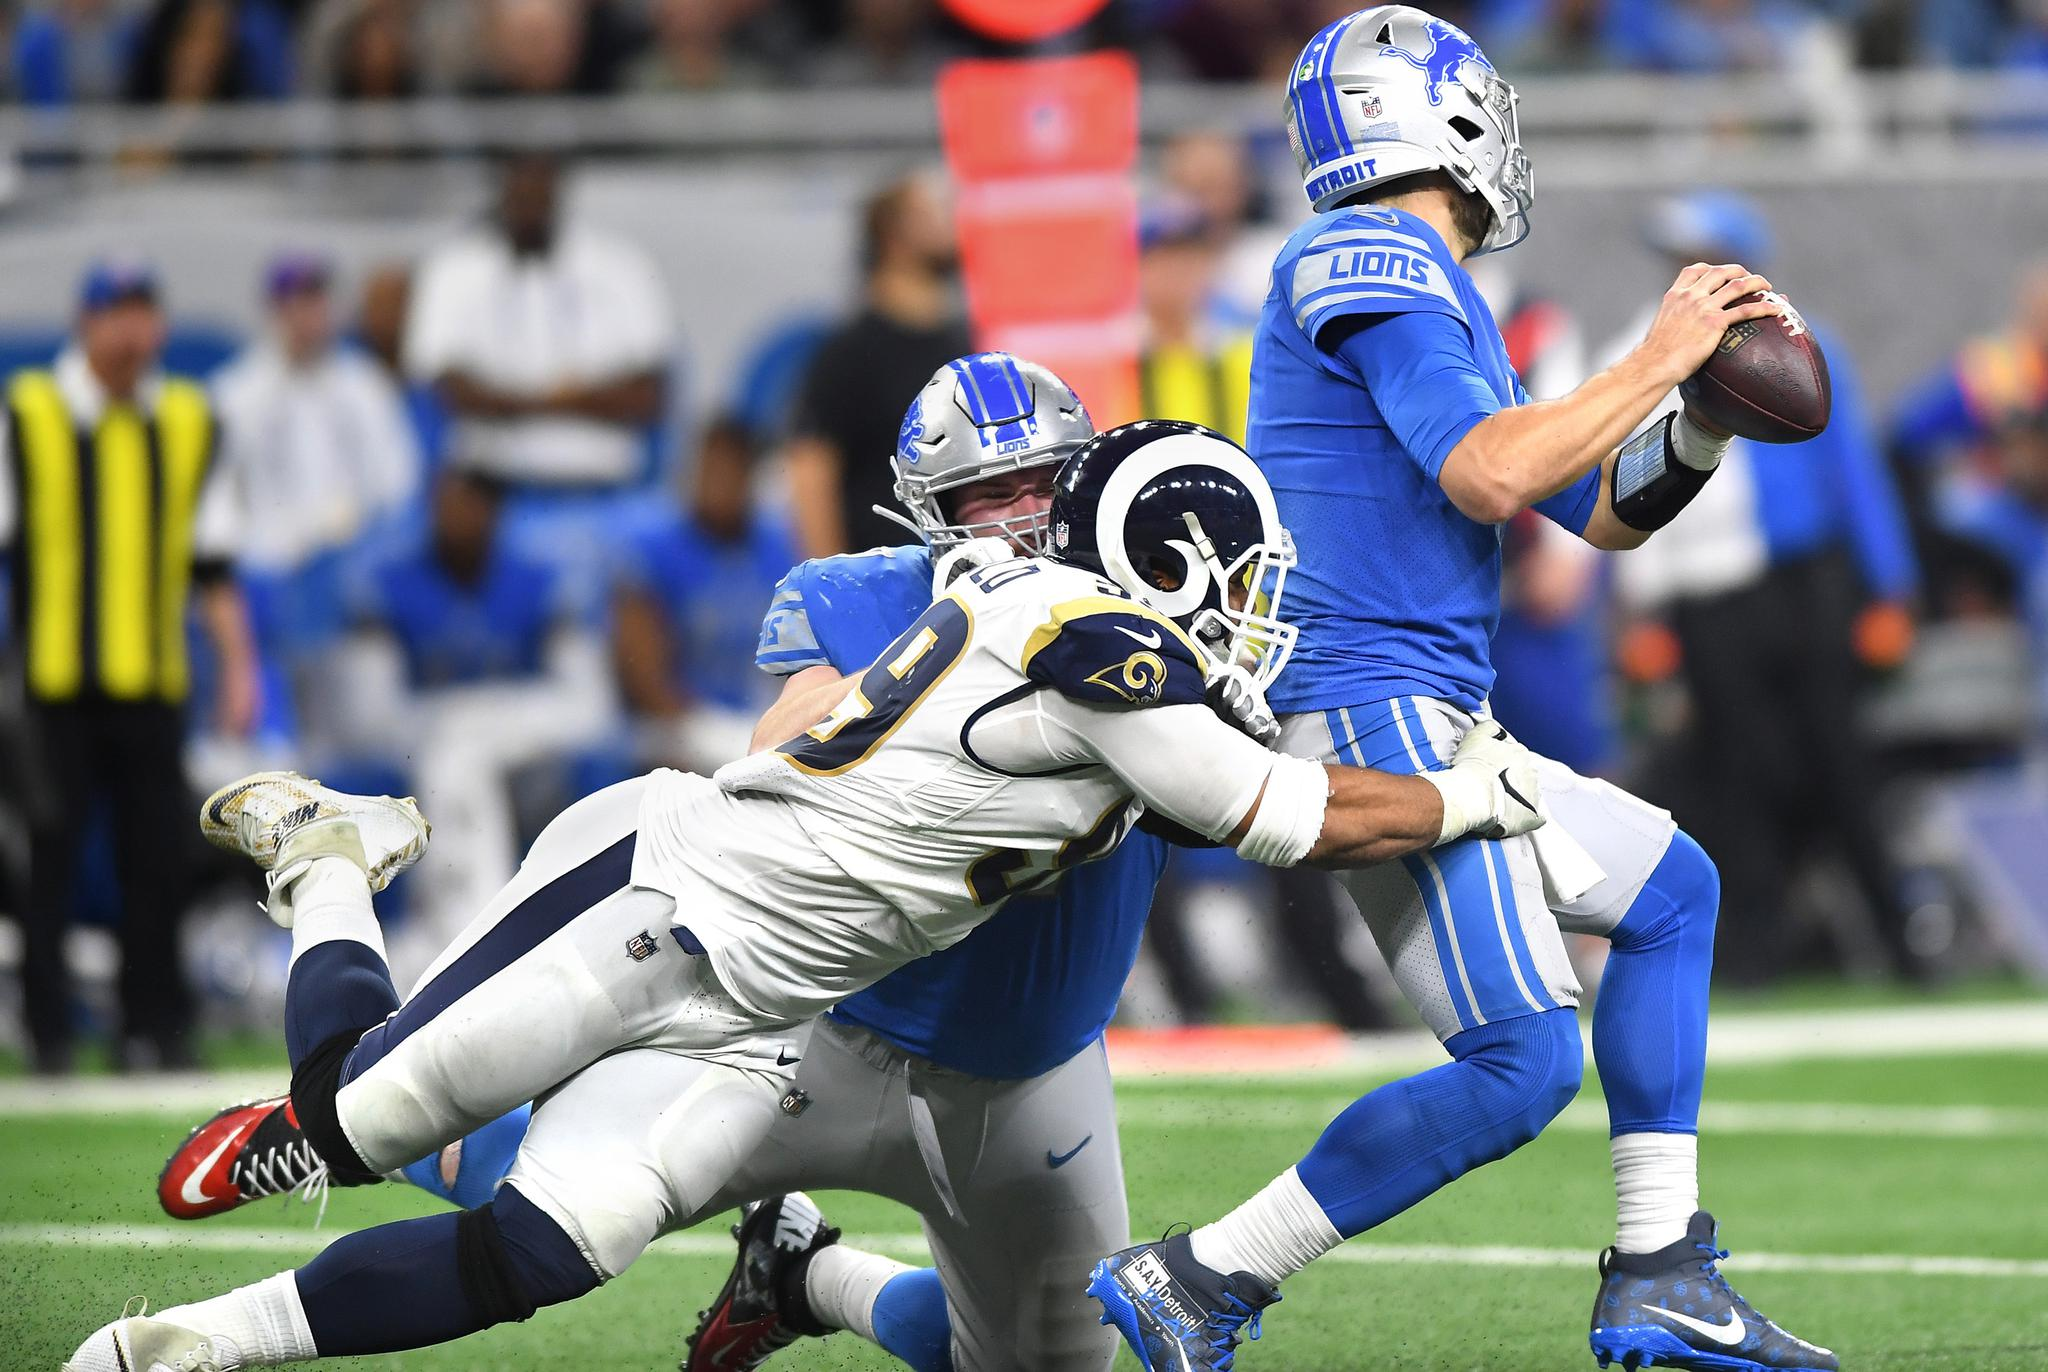 da0deac3605 How will the Bears protect Mitch Trubisky from QB menace Aaron Donald of  the Rams